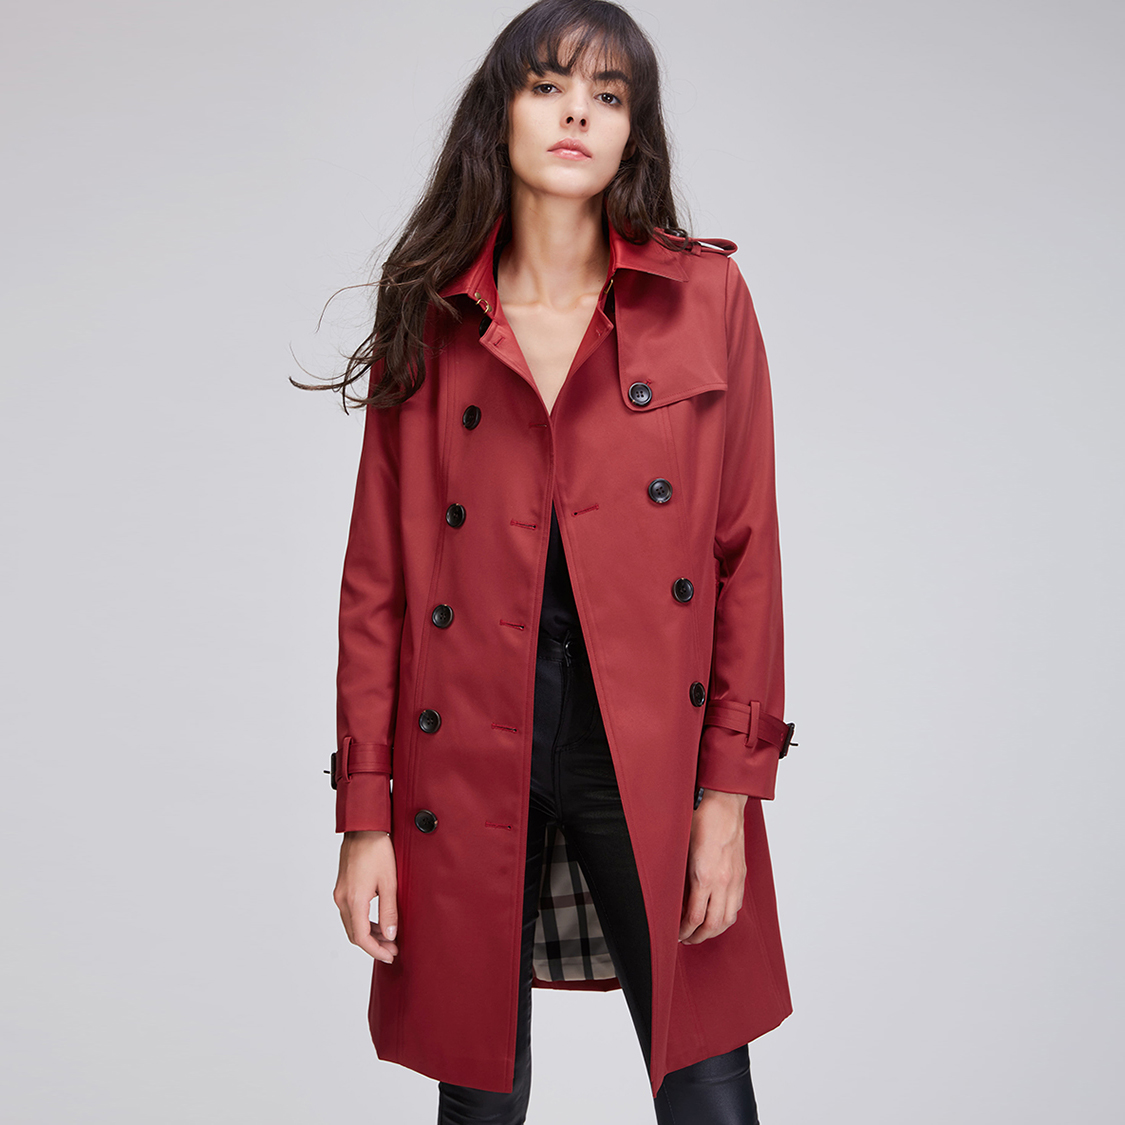 Jazzevar Autumn New High Fashion Brand Woman Classic Double Breasted Trench Coat Waterproof Raincoat Business Outerwear #2